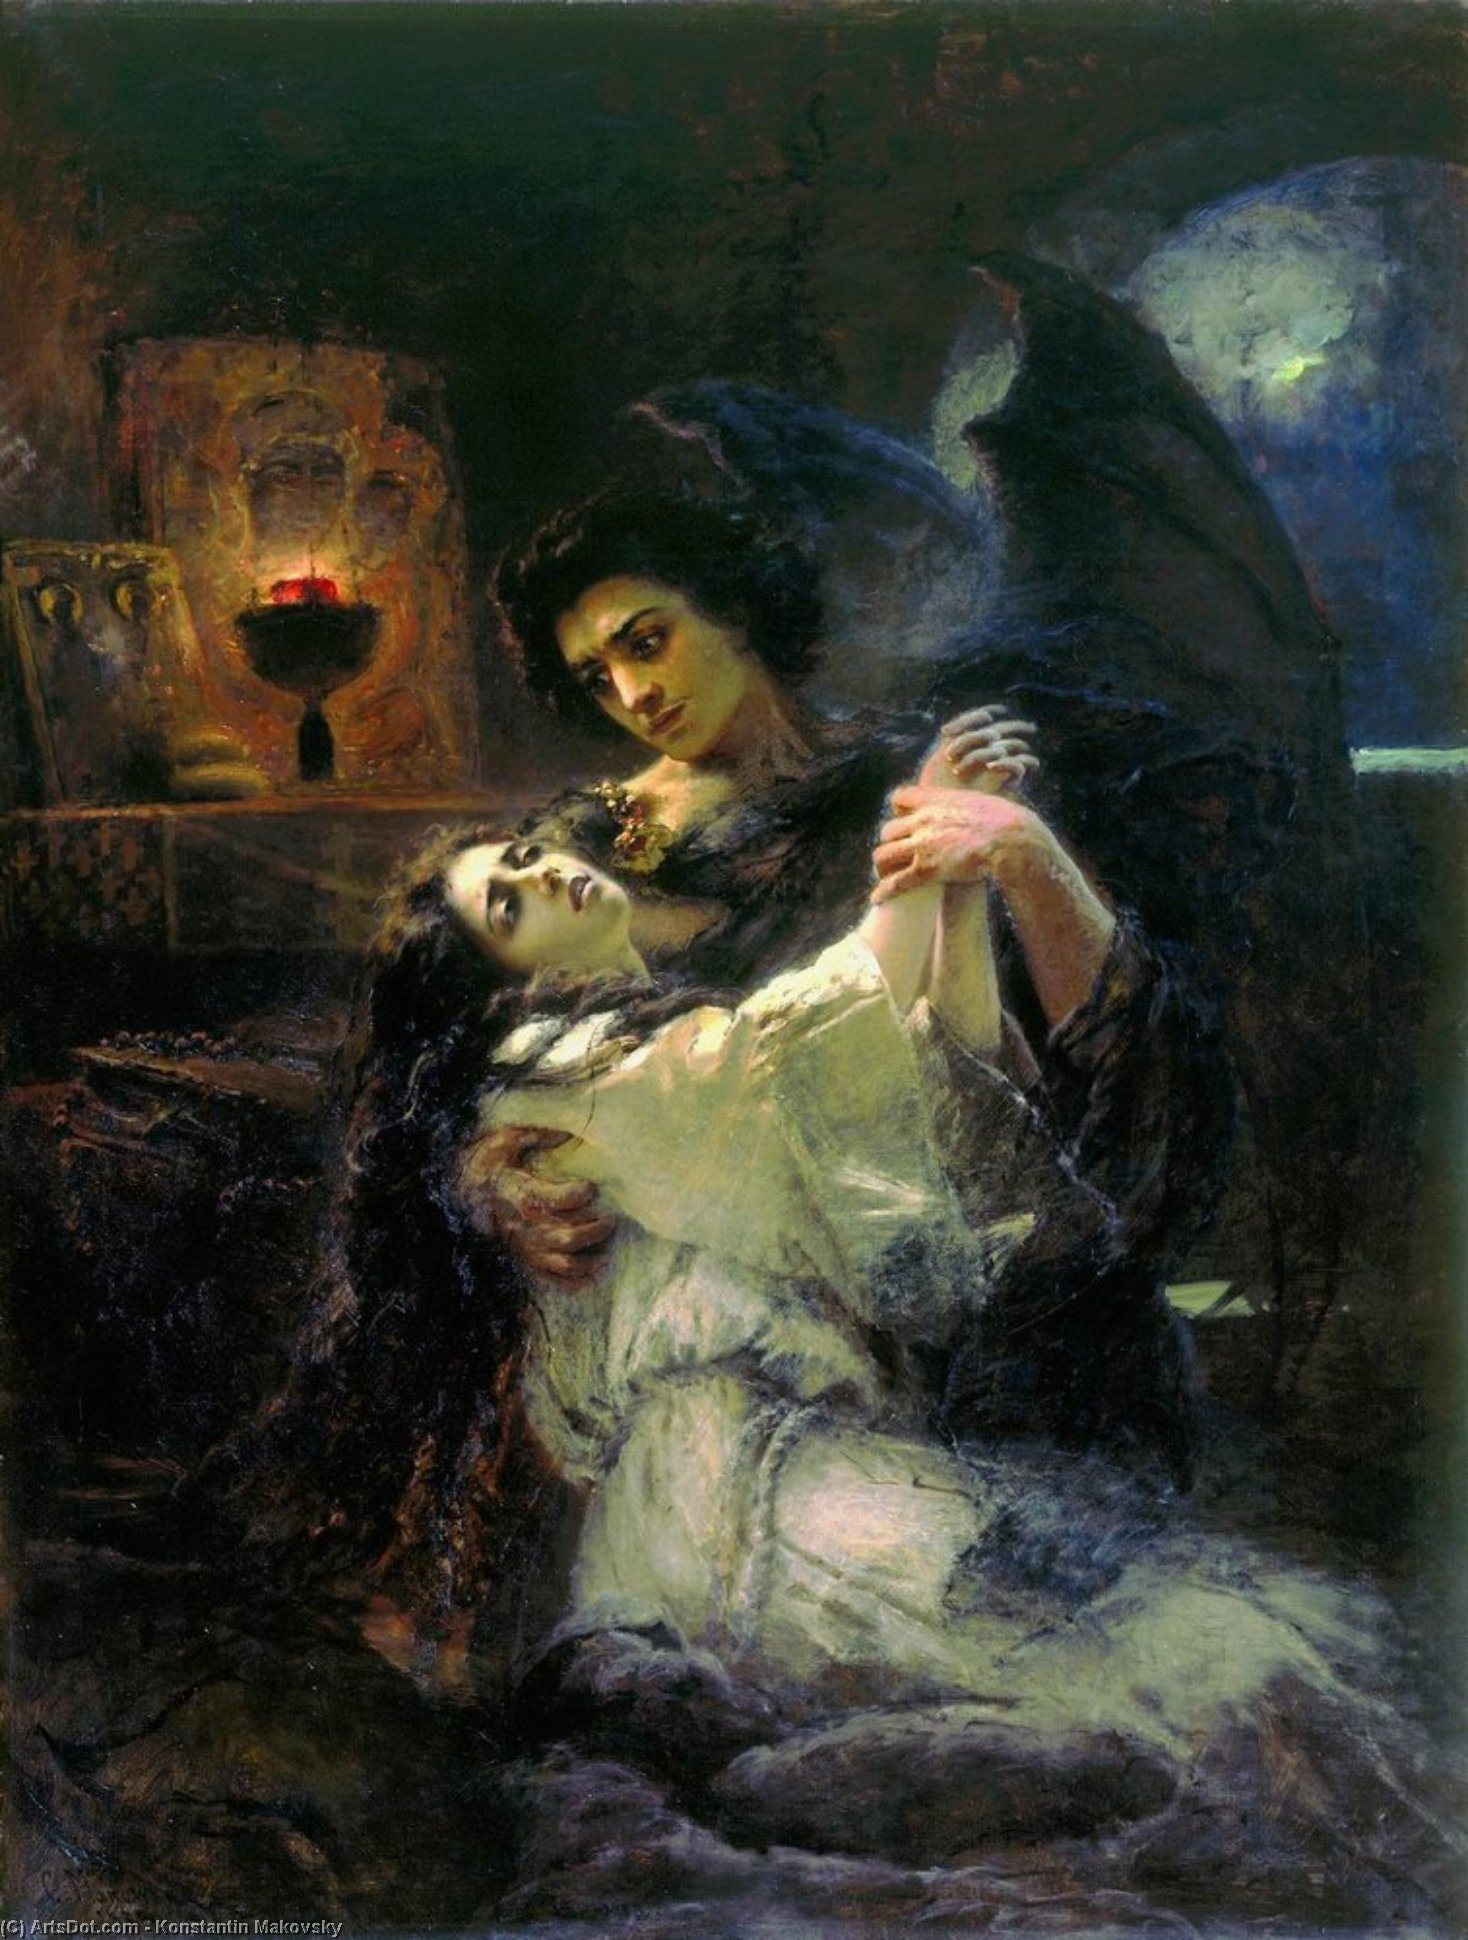 Tamara and Demon, 1889 by Konstantin Yegorovich Makovsky (1839-1915, Russia)